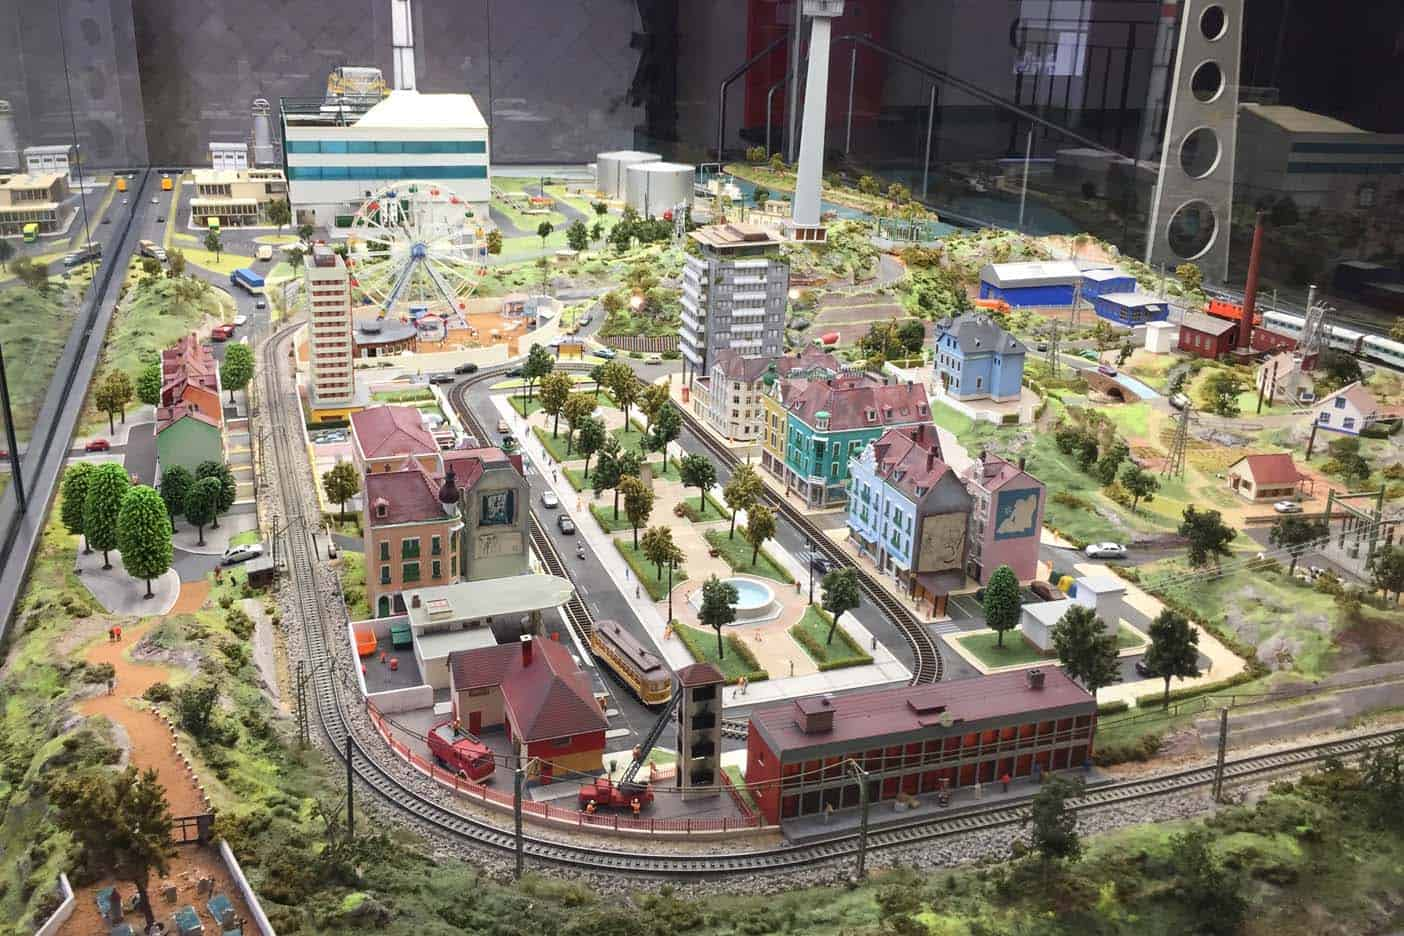 Electricity Museum in Lissabon